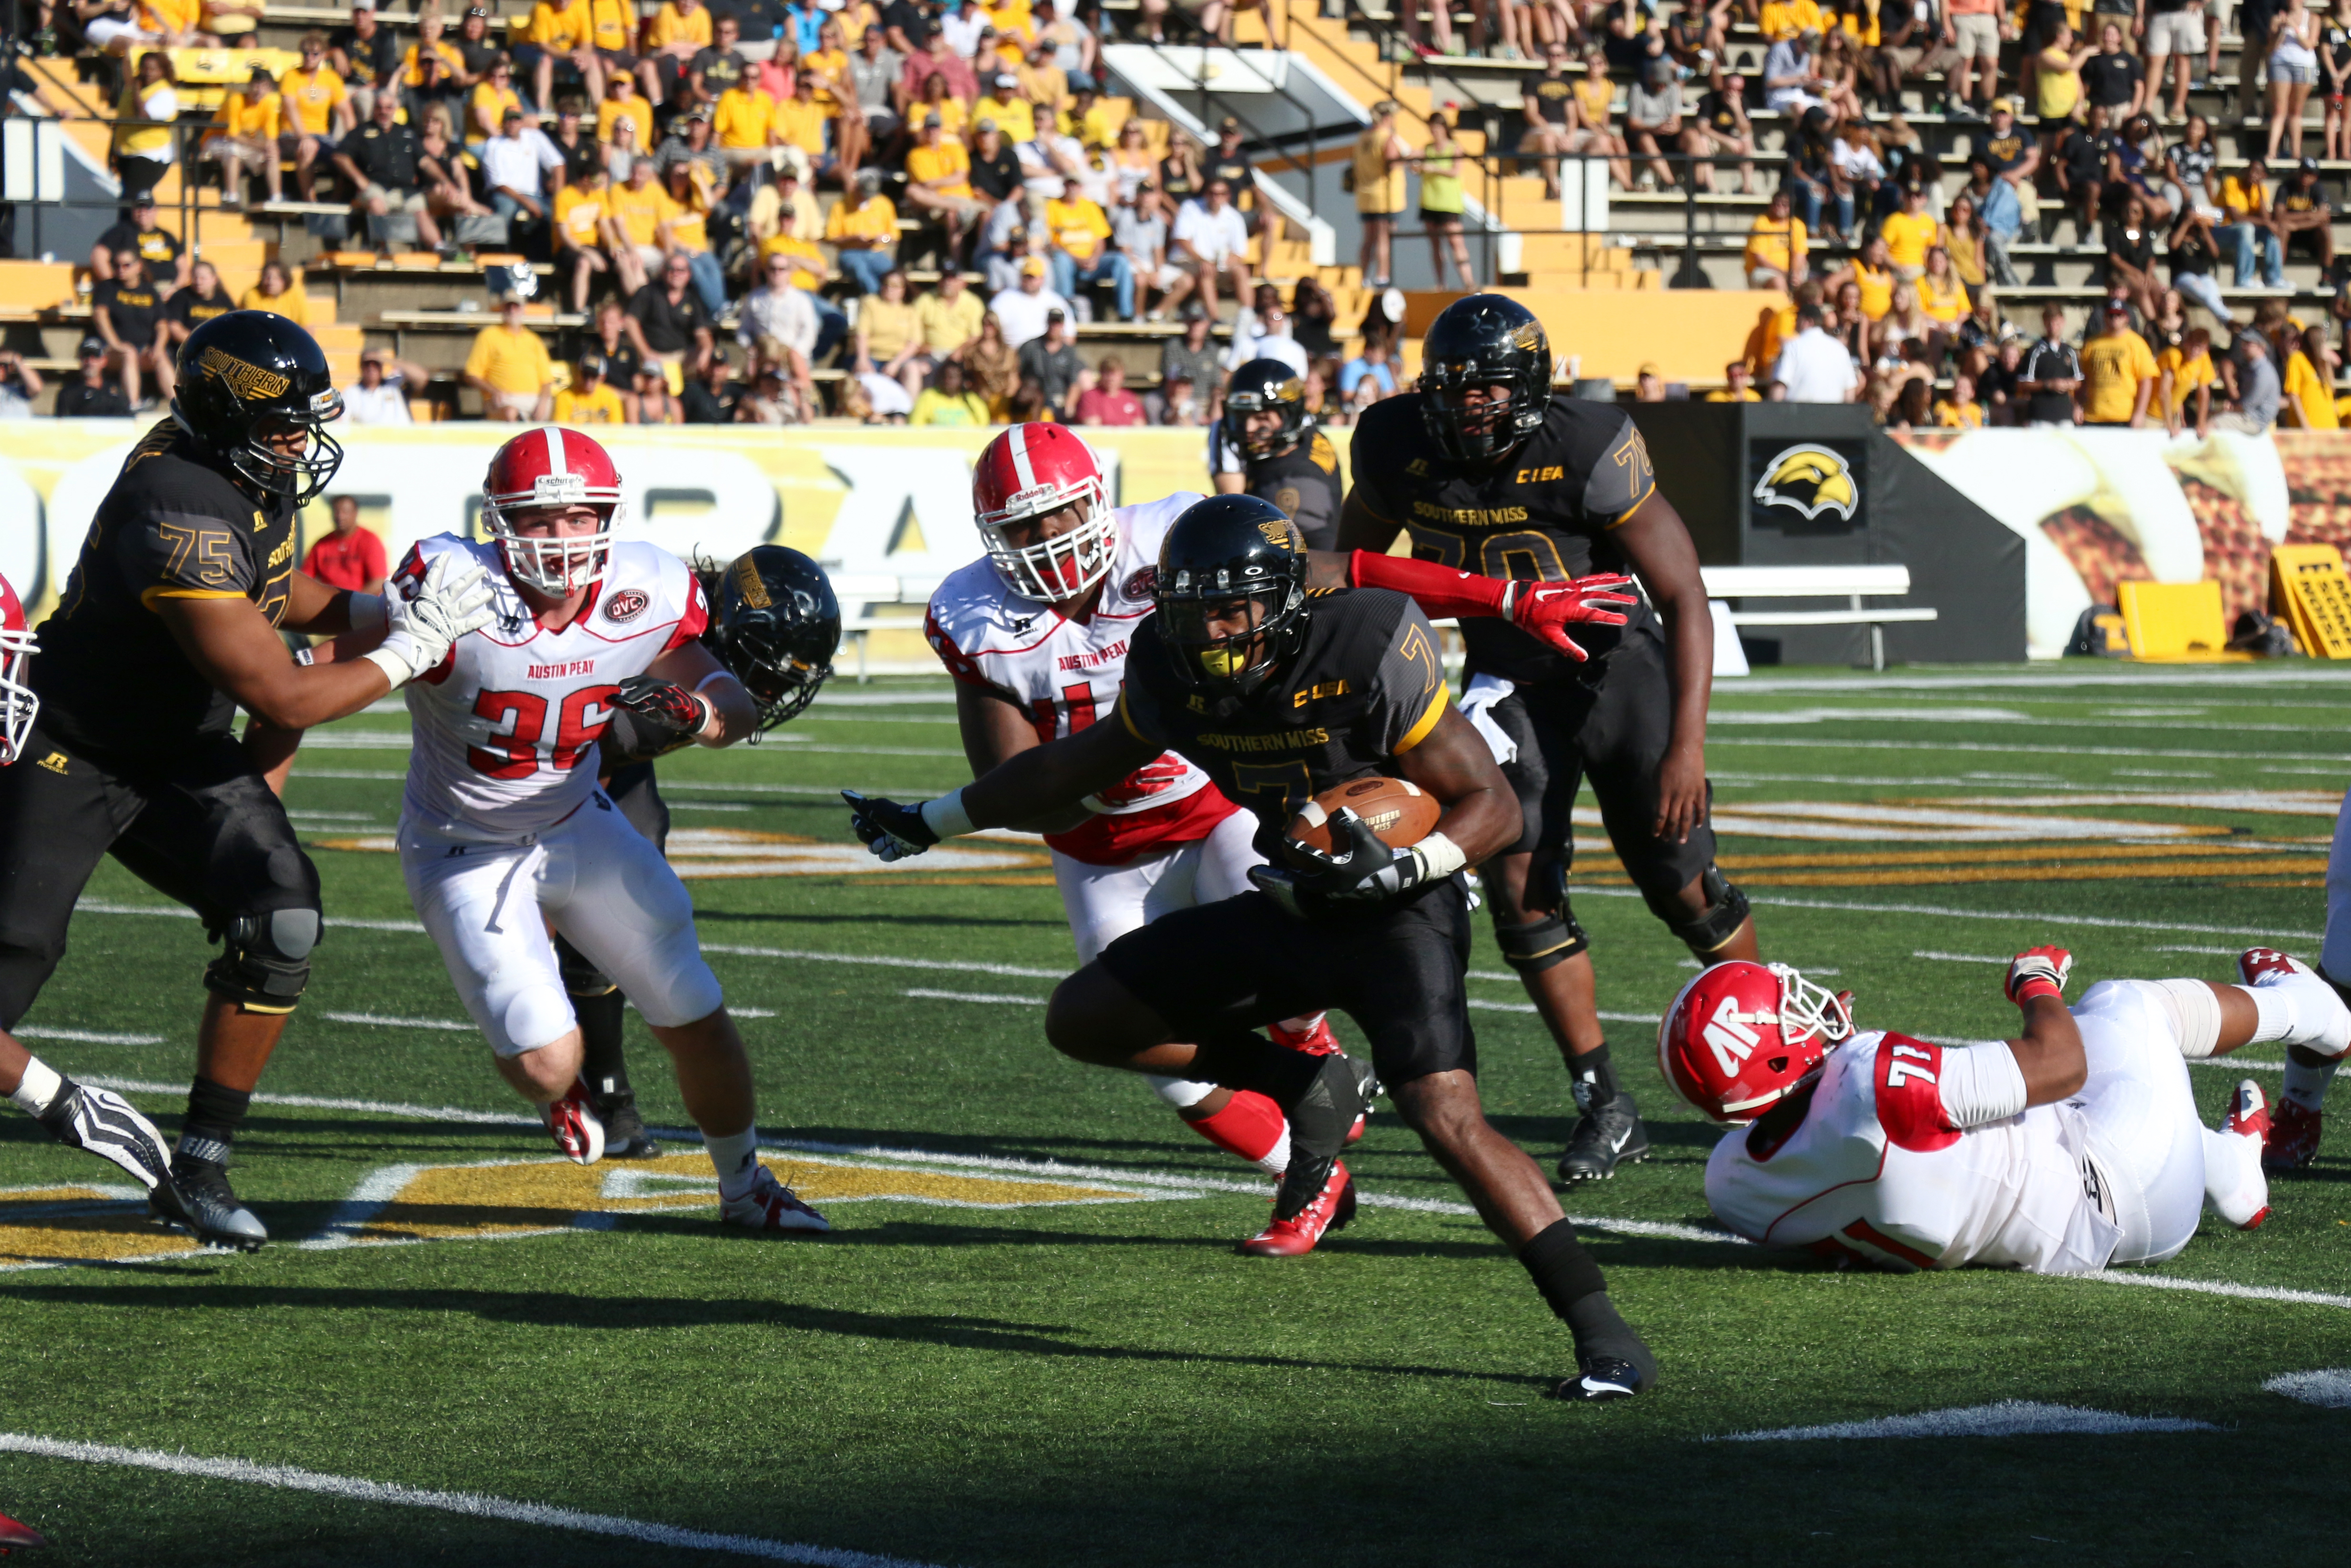 Justice Hays runs past Austin Peay defenders during the second game of the season. The Golden Eagles won 52-6 against the Governors Sept 12, 2015.